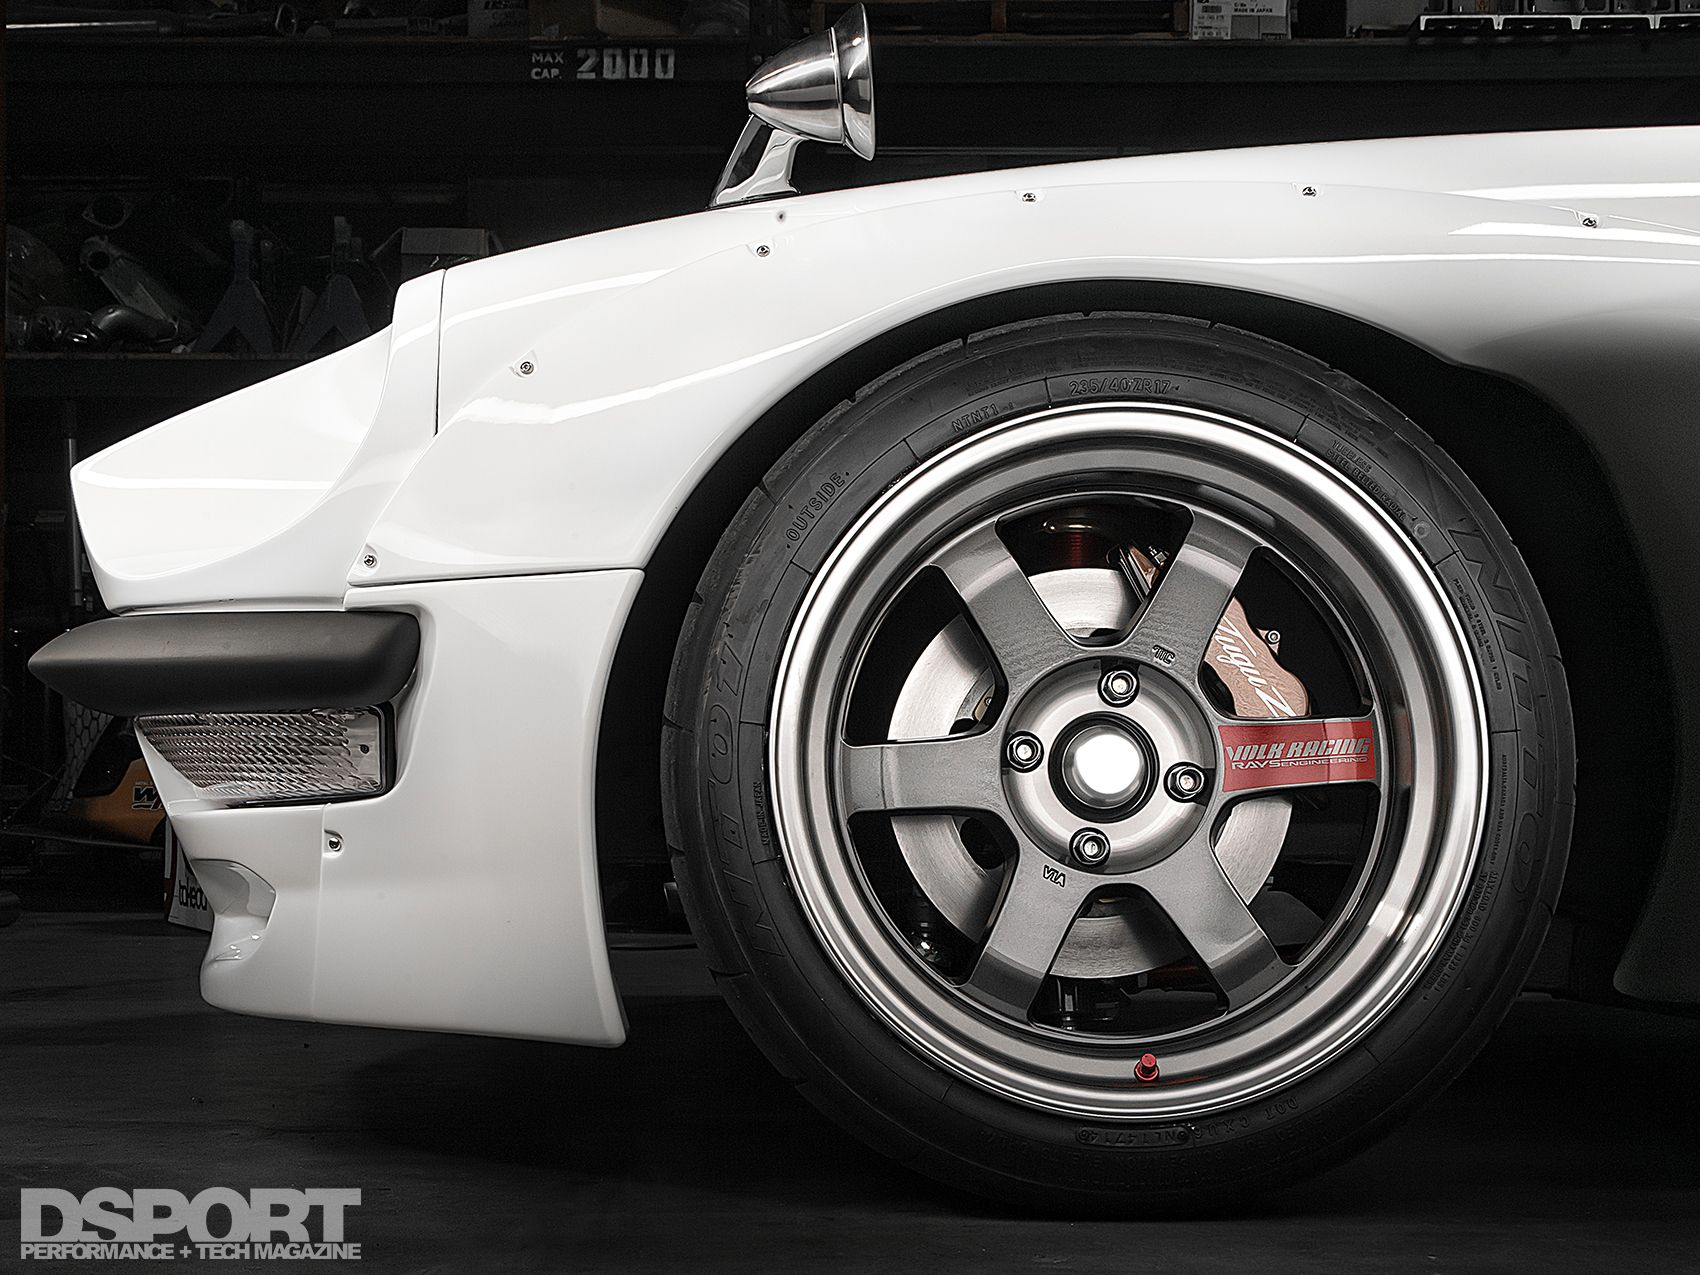 te37v on a datsun 240z | sung kang's fugu Z in kilimanjaro white.